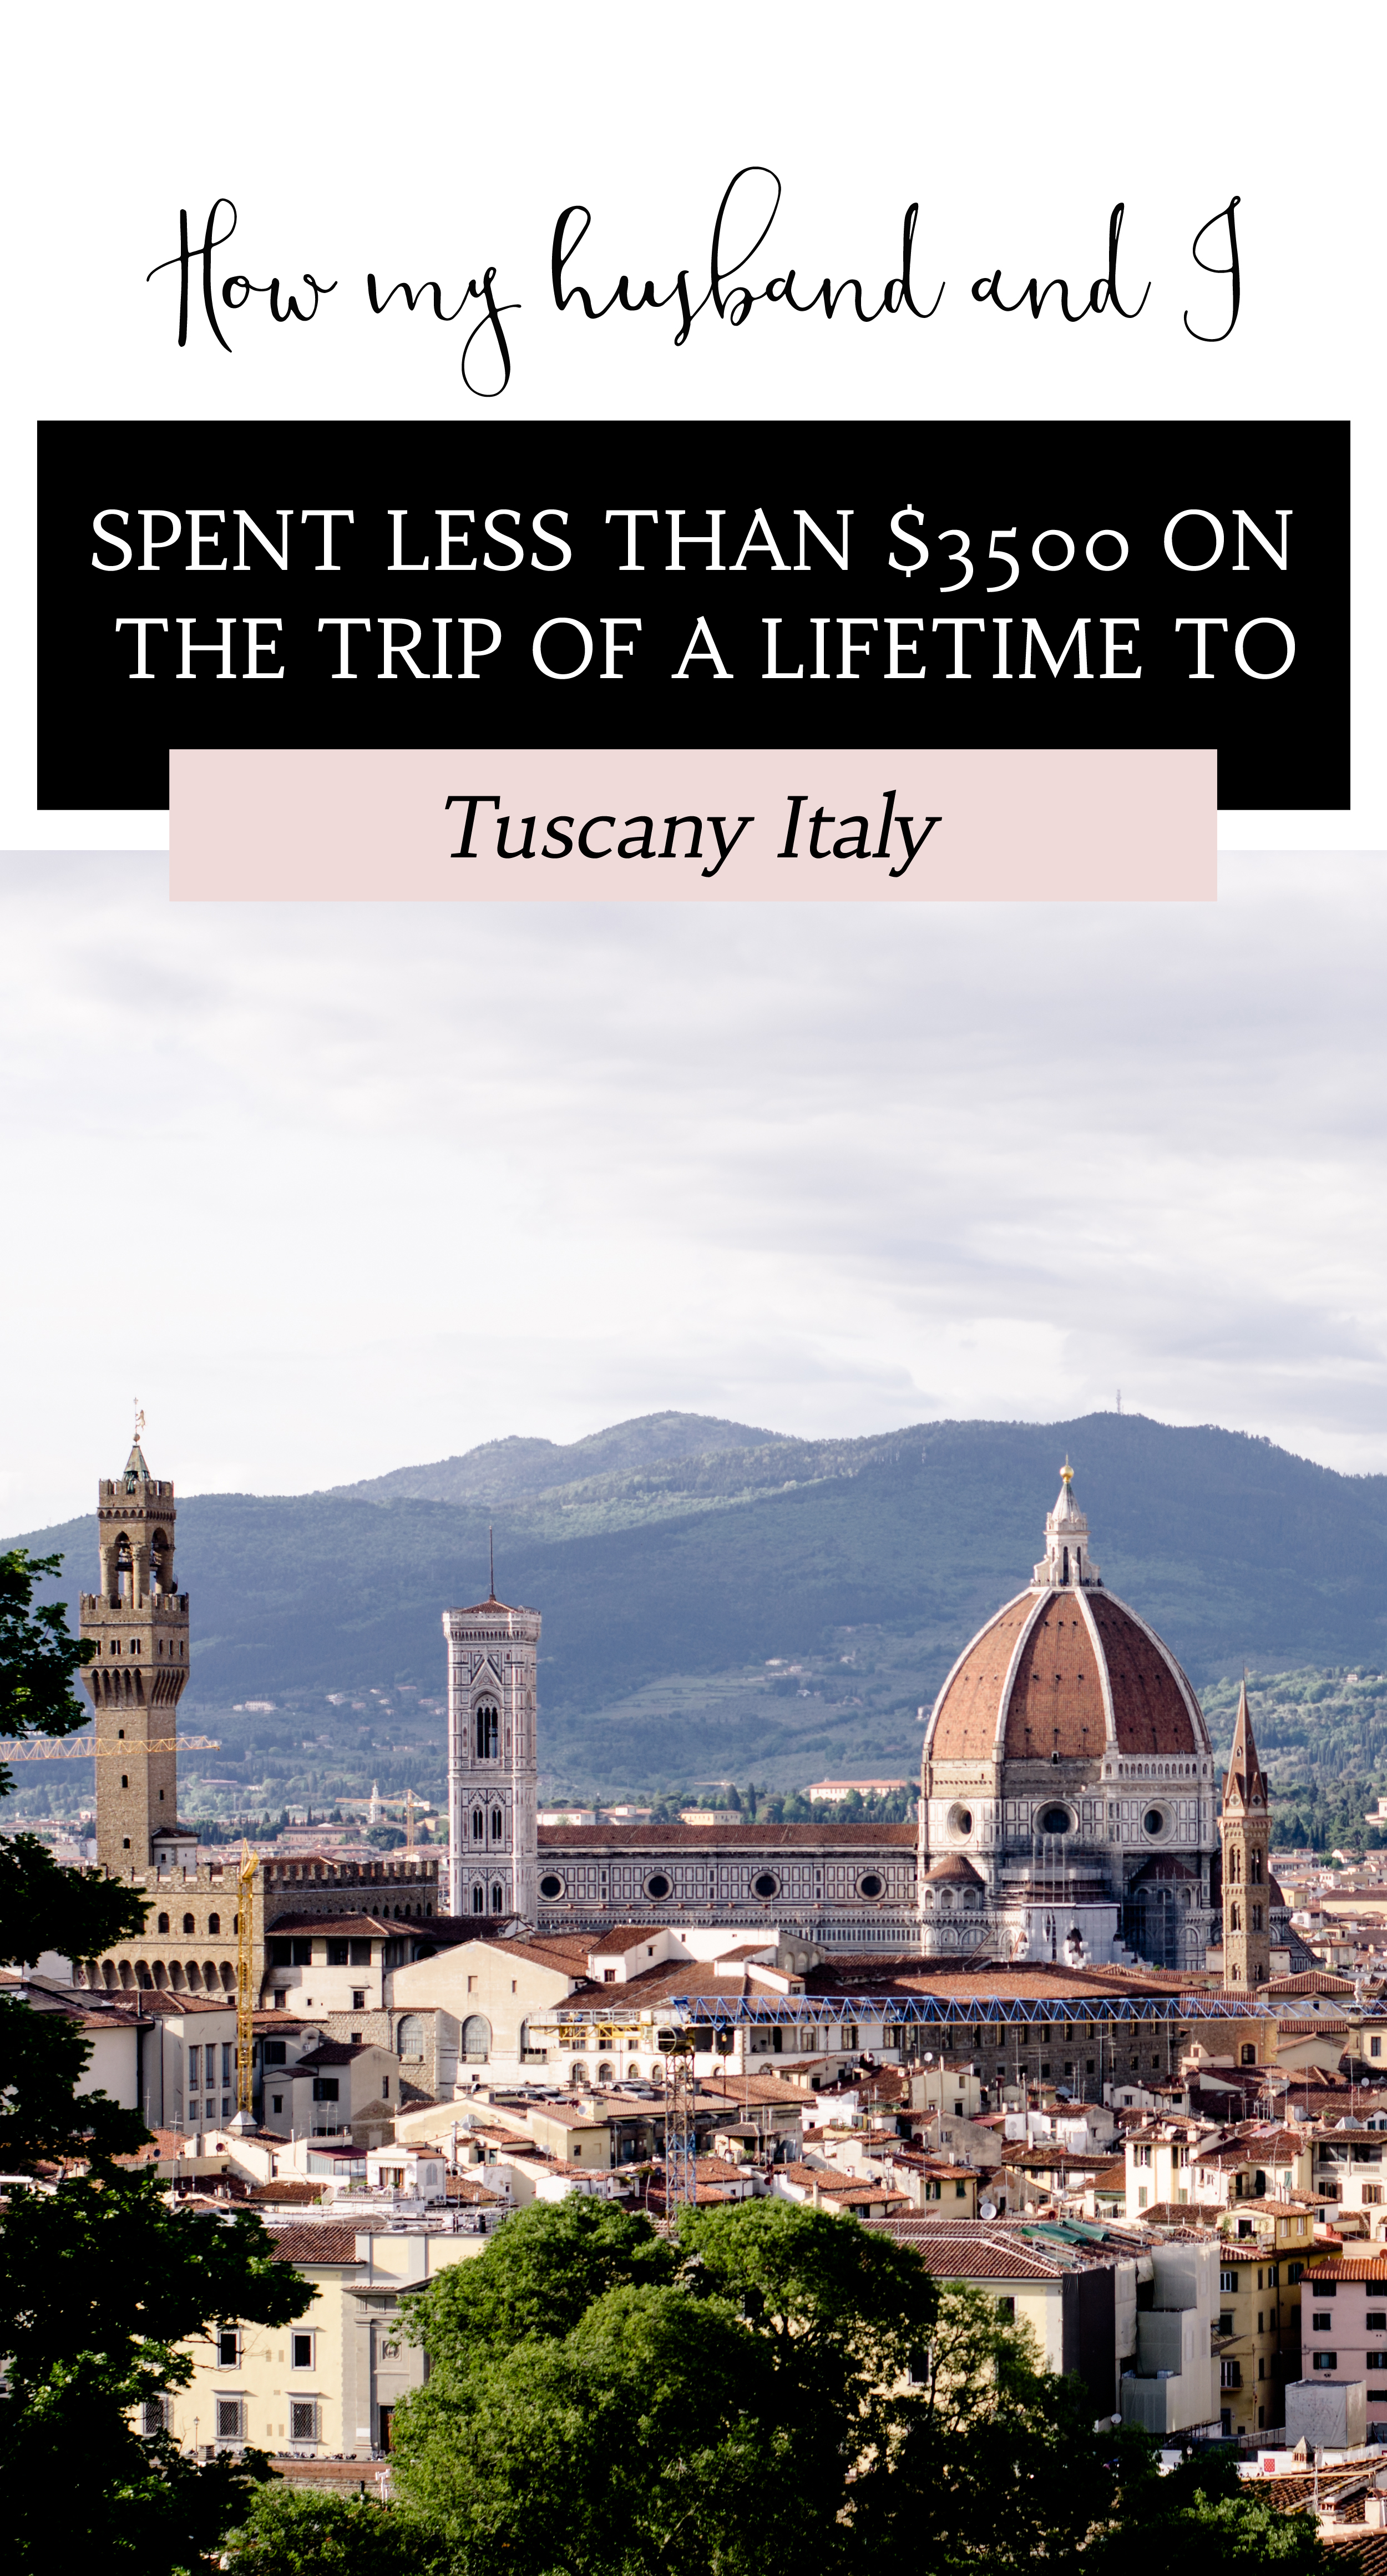 tuscany-florence-italy-honeymoon-travel-tips.jpg